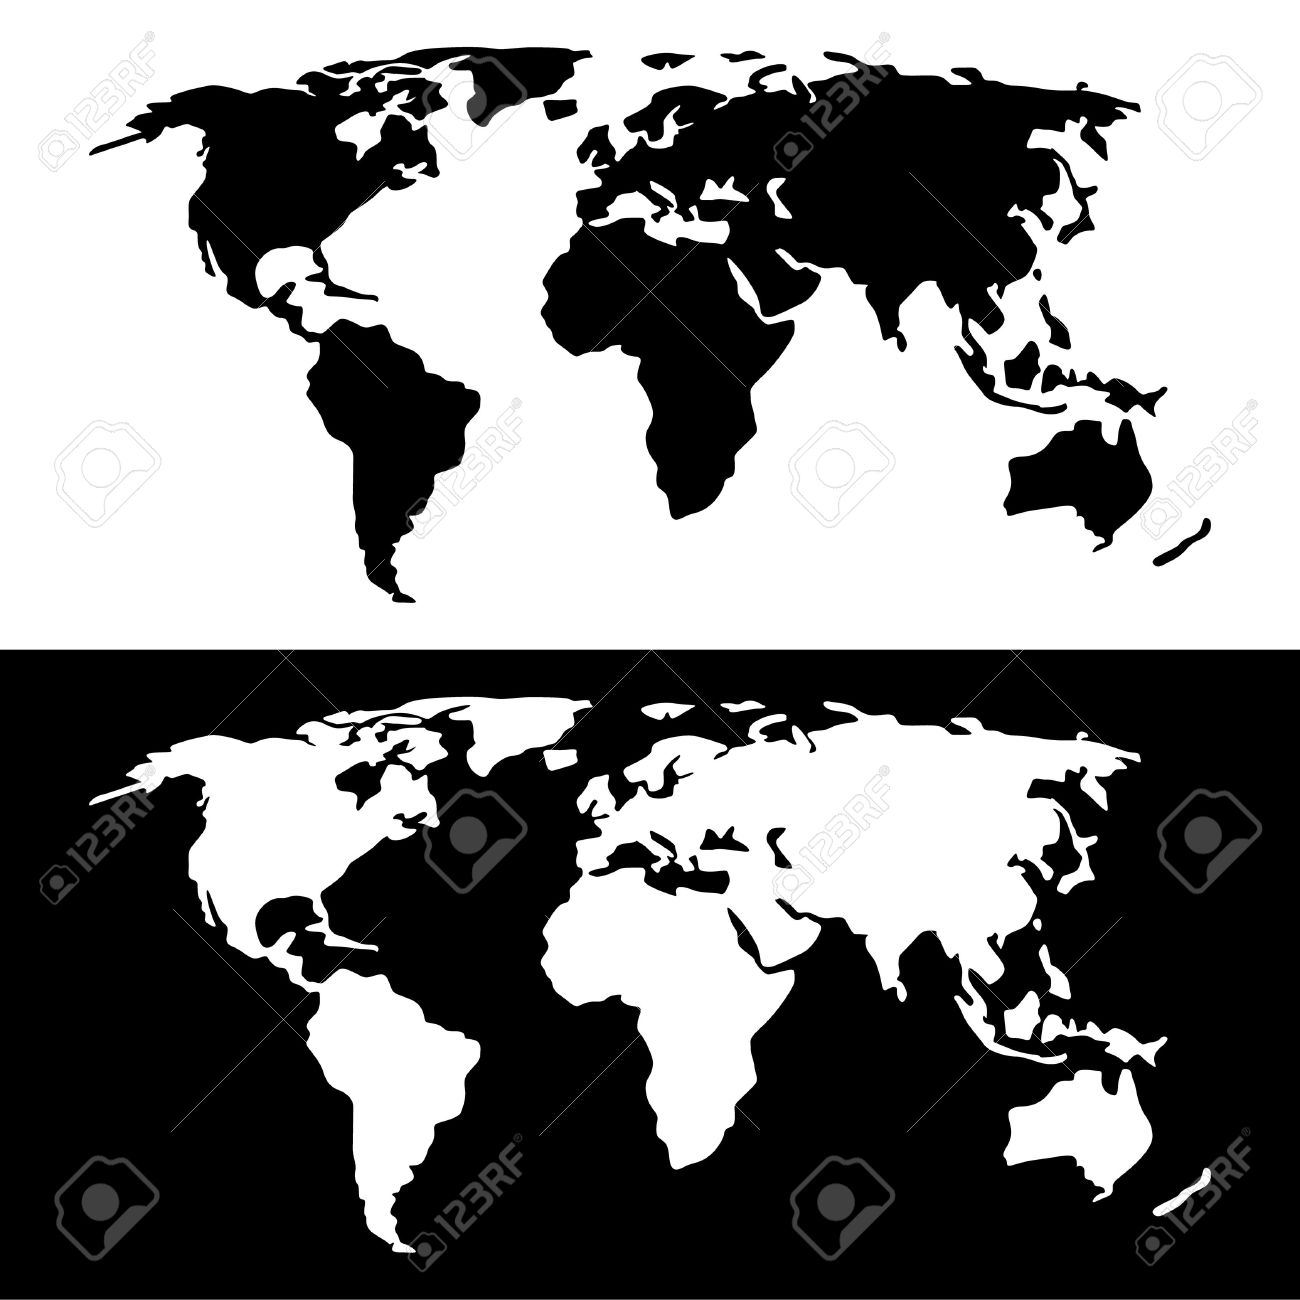 World map black and white royalty free cliparts vectors and stock world map black and white stock vector 36648028 gumiabroncs Image collections